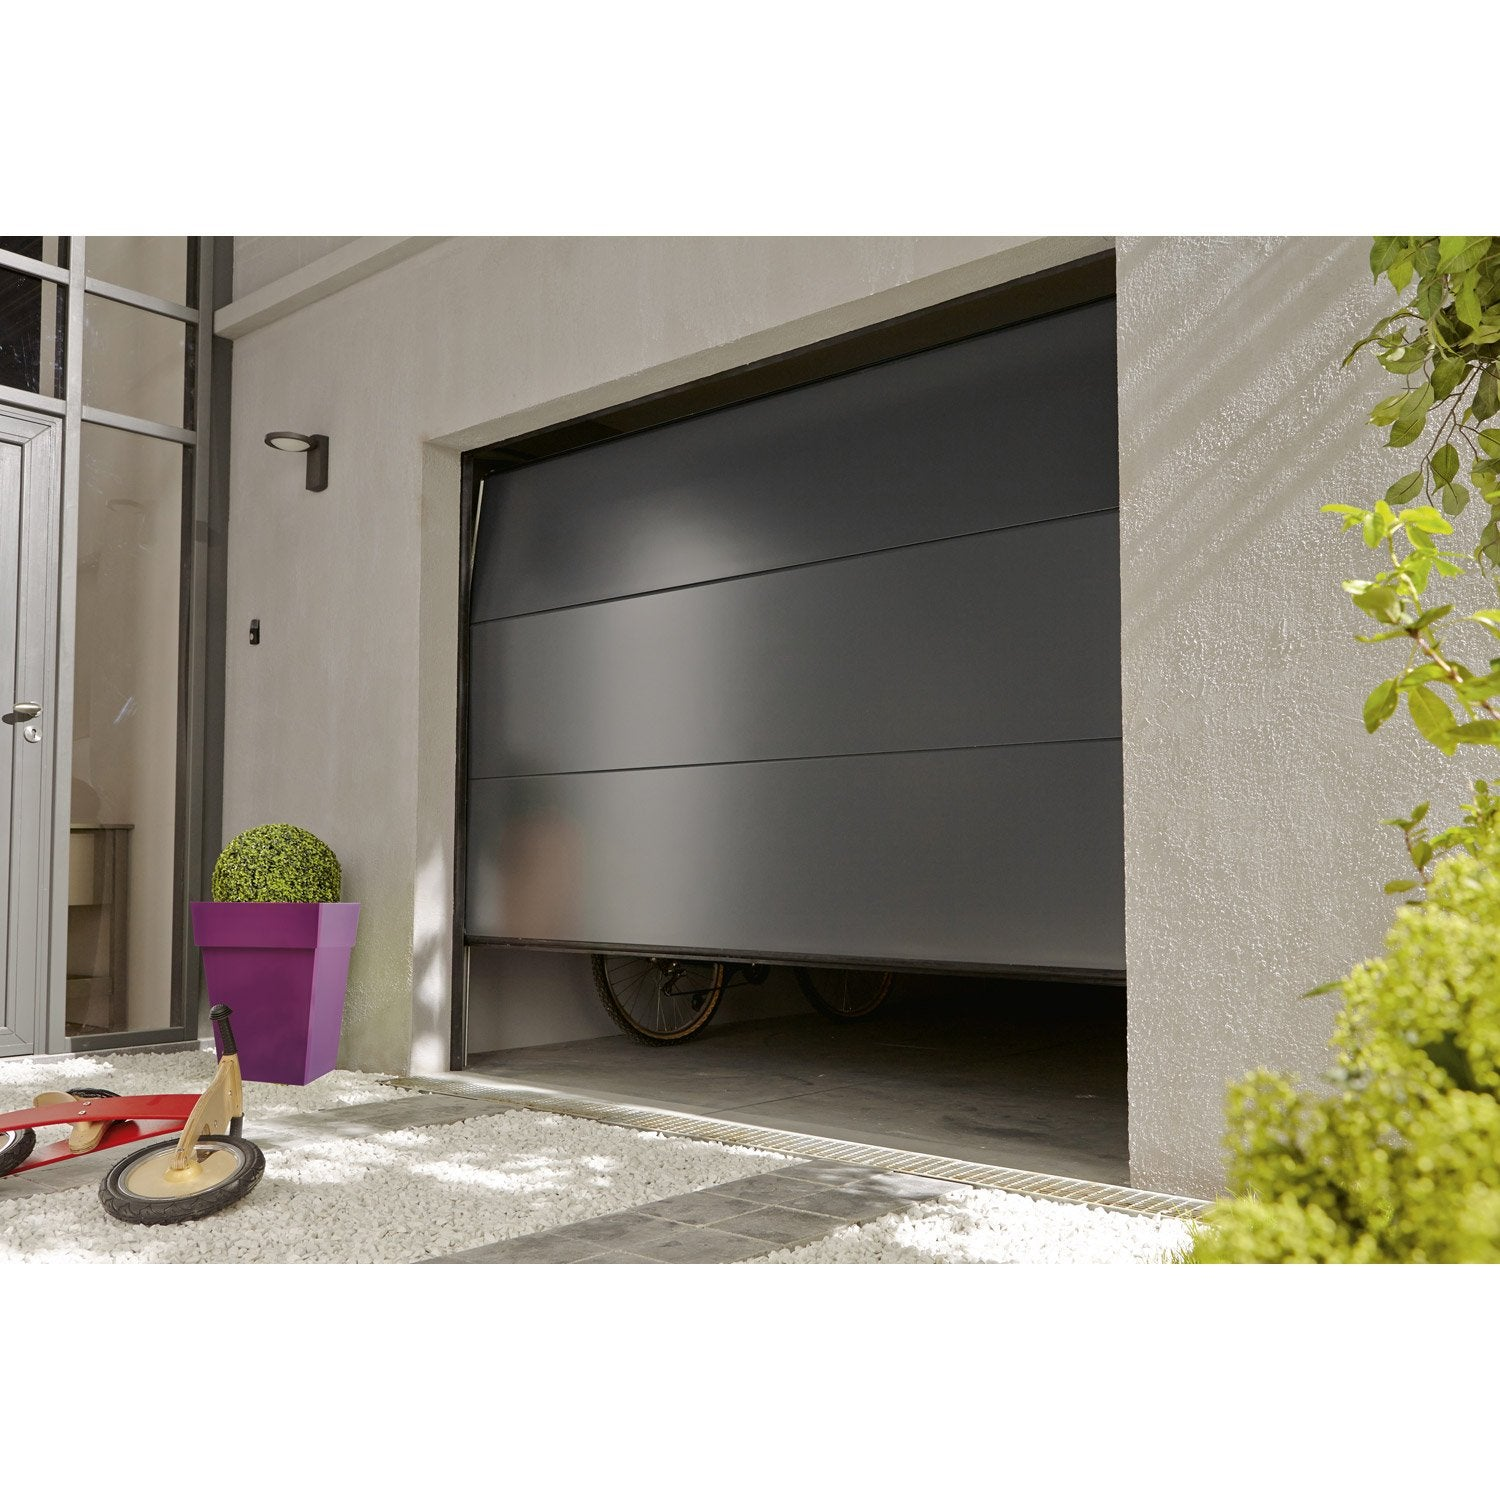 Porte de garage sectionelle palma acier gris anthracite for Carrelage pour garage leroy merlin